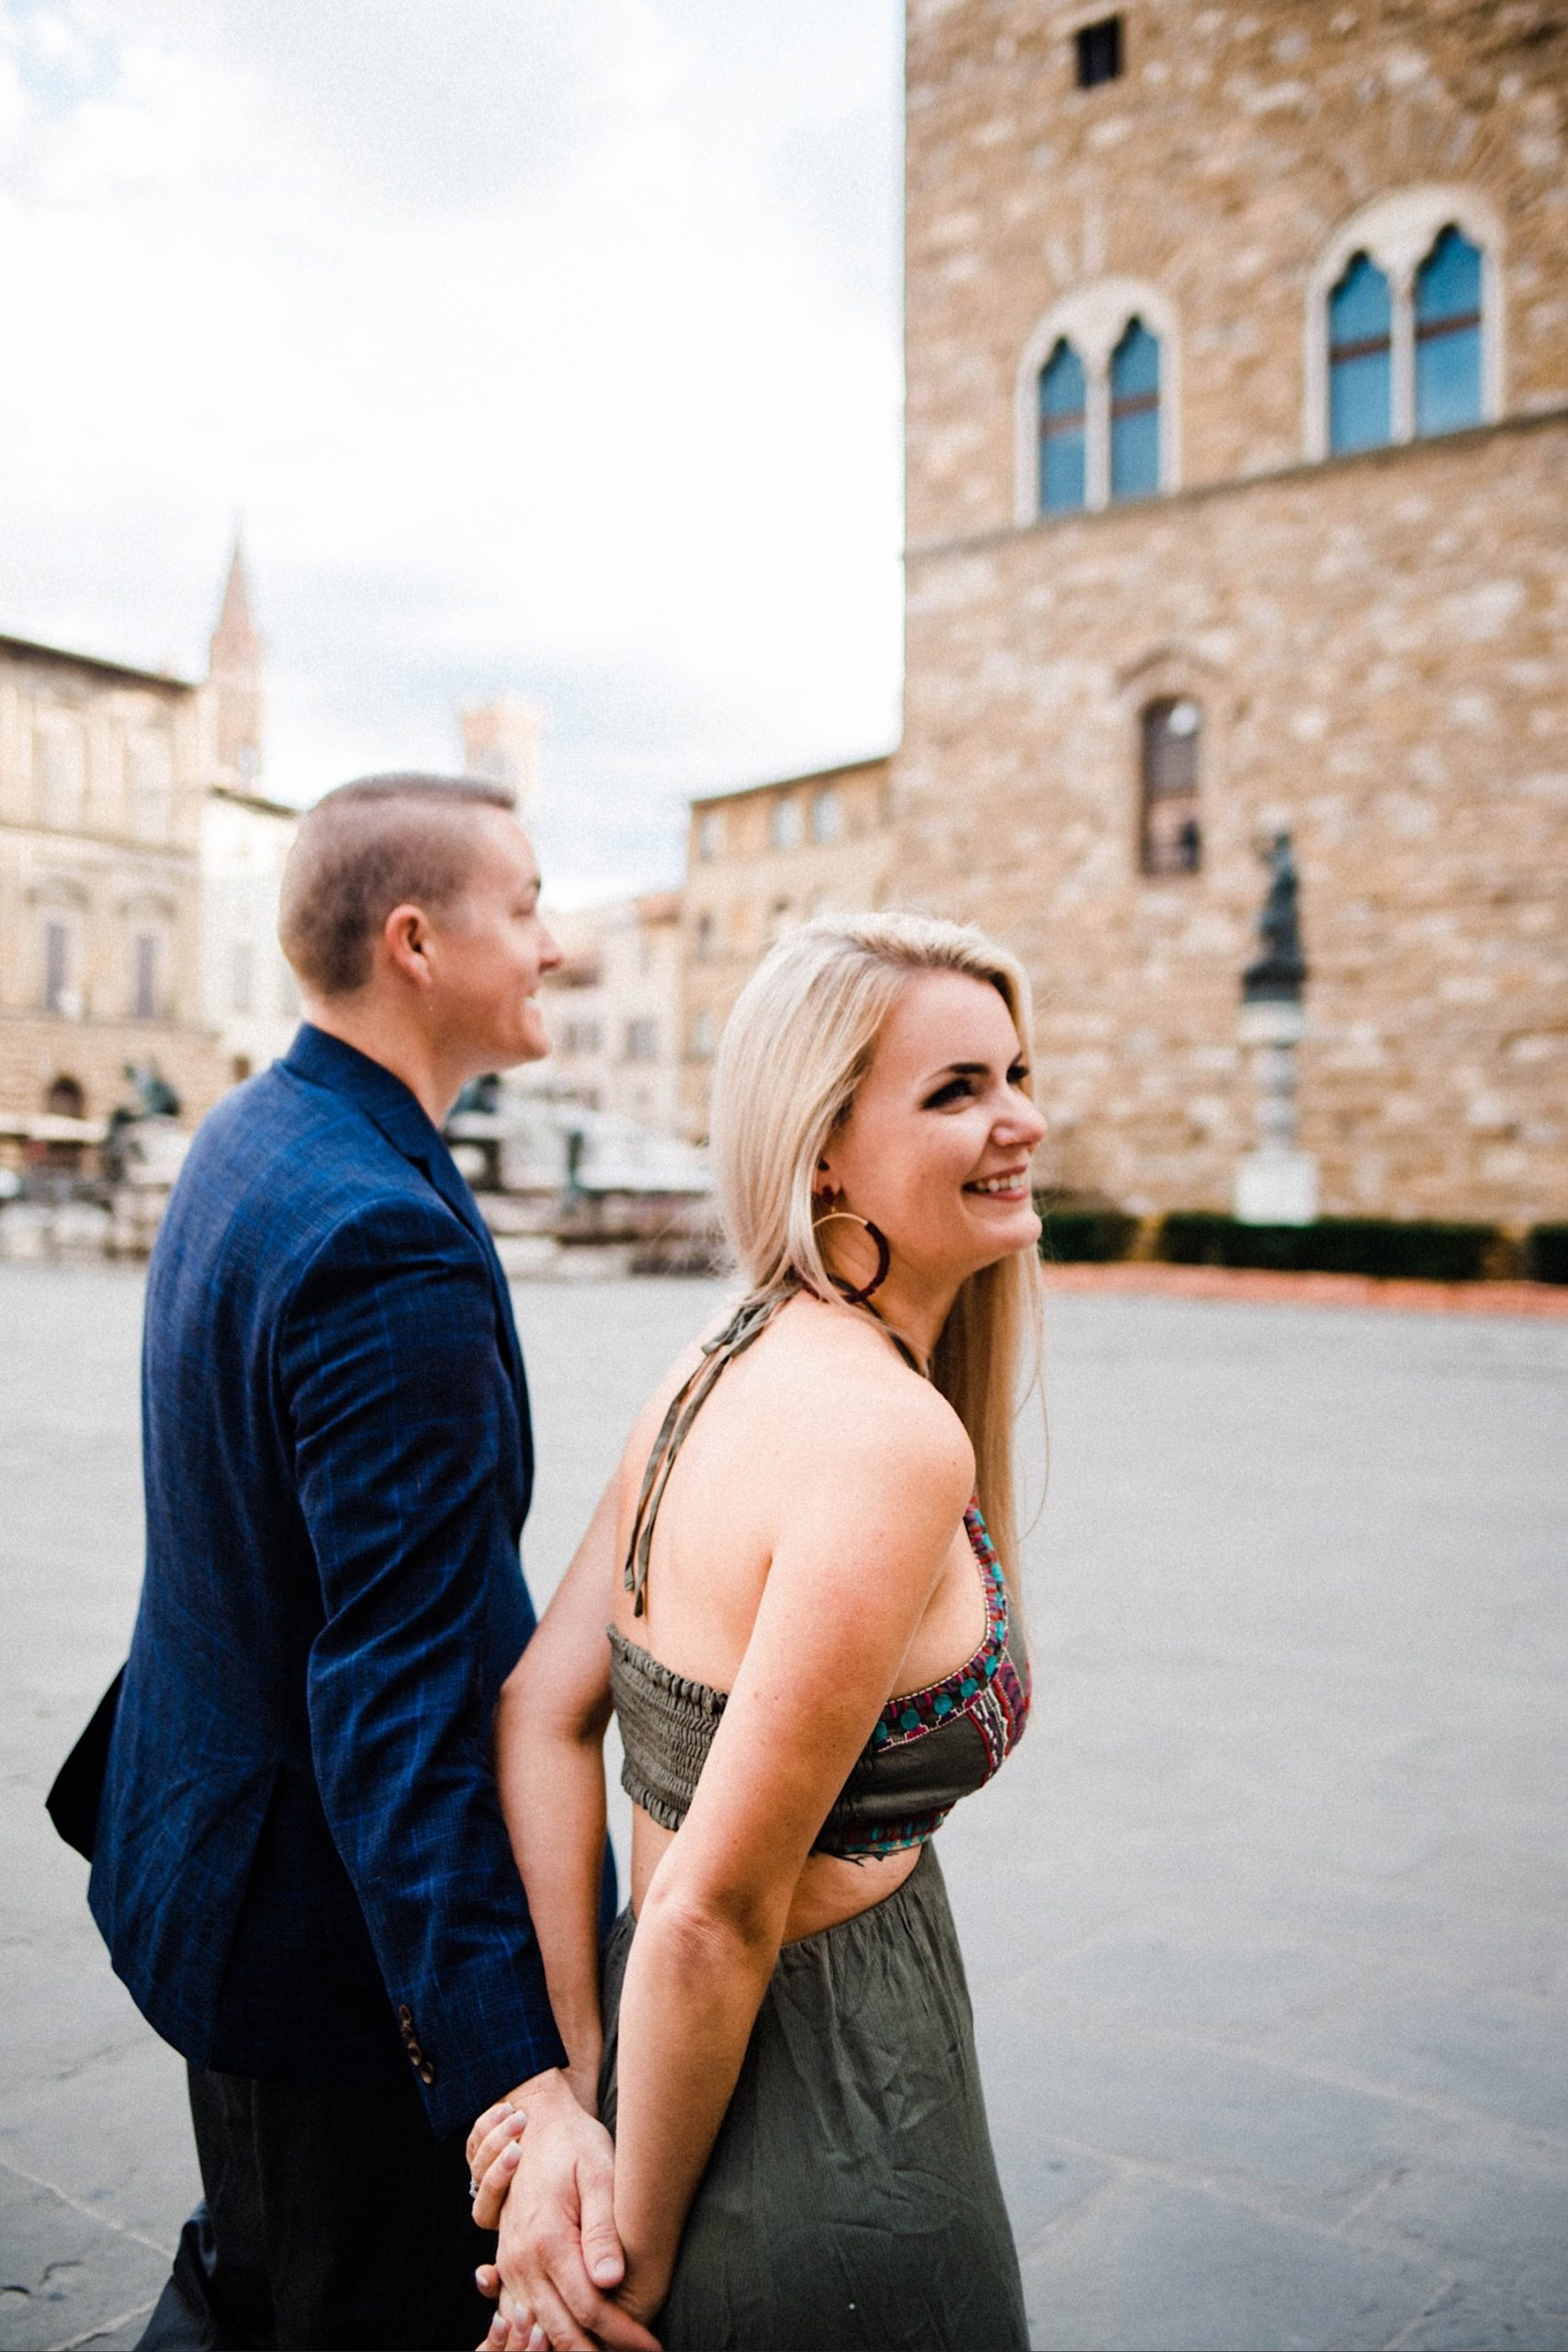 A candid portrait photo of a couple walking through the Piazza della Signoria in Florence, holding hands and laughing.